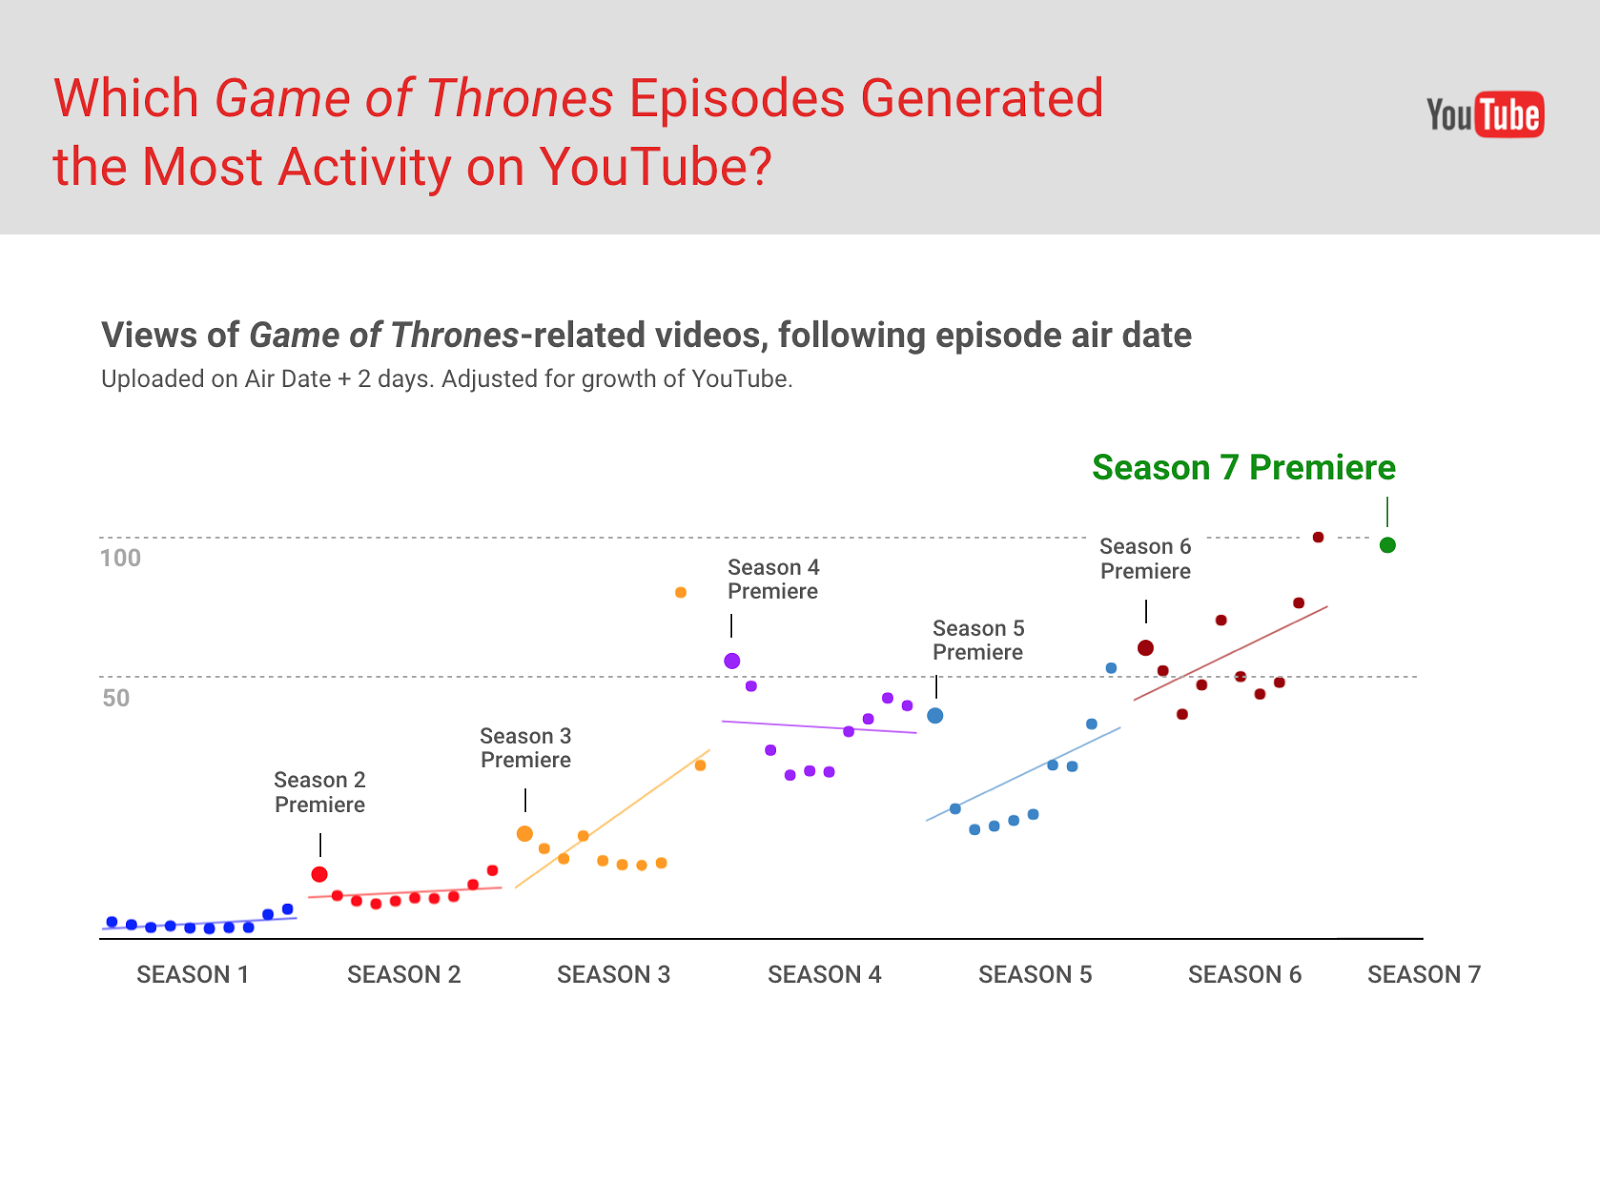 Dog Repellent Circuit No 2 Youtube Game Of Thrones Continues To Level Up Fan Engagement On The Season 7 Premiere Generated Most Activity Compared Any Other Seasons 16